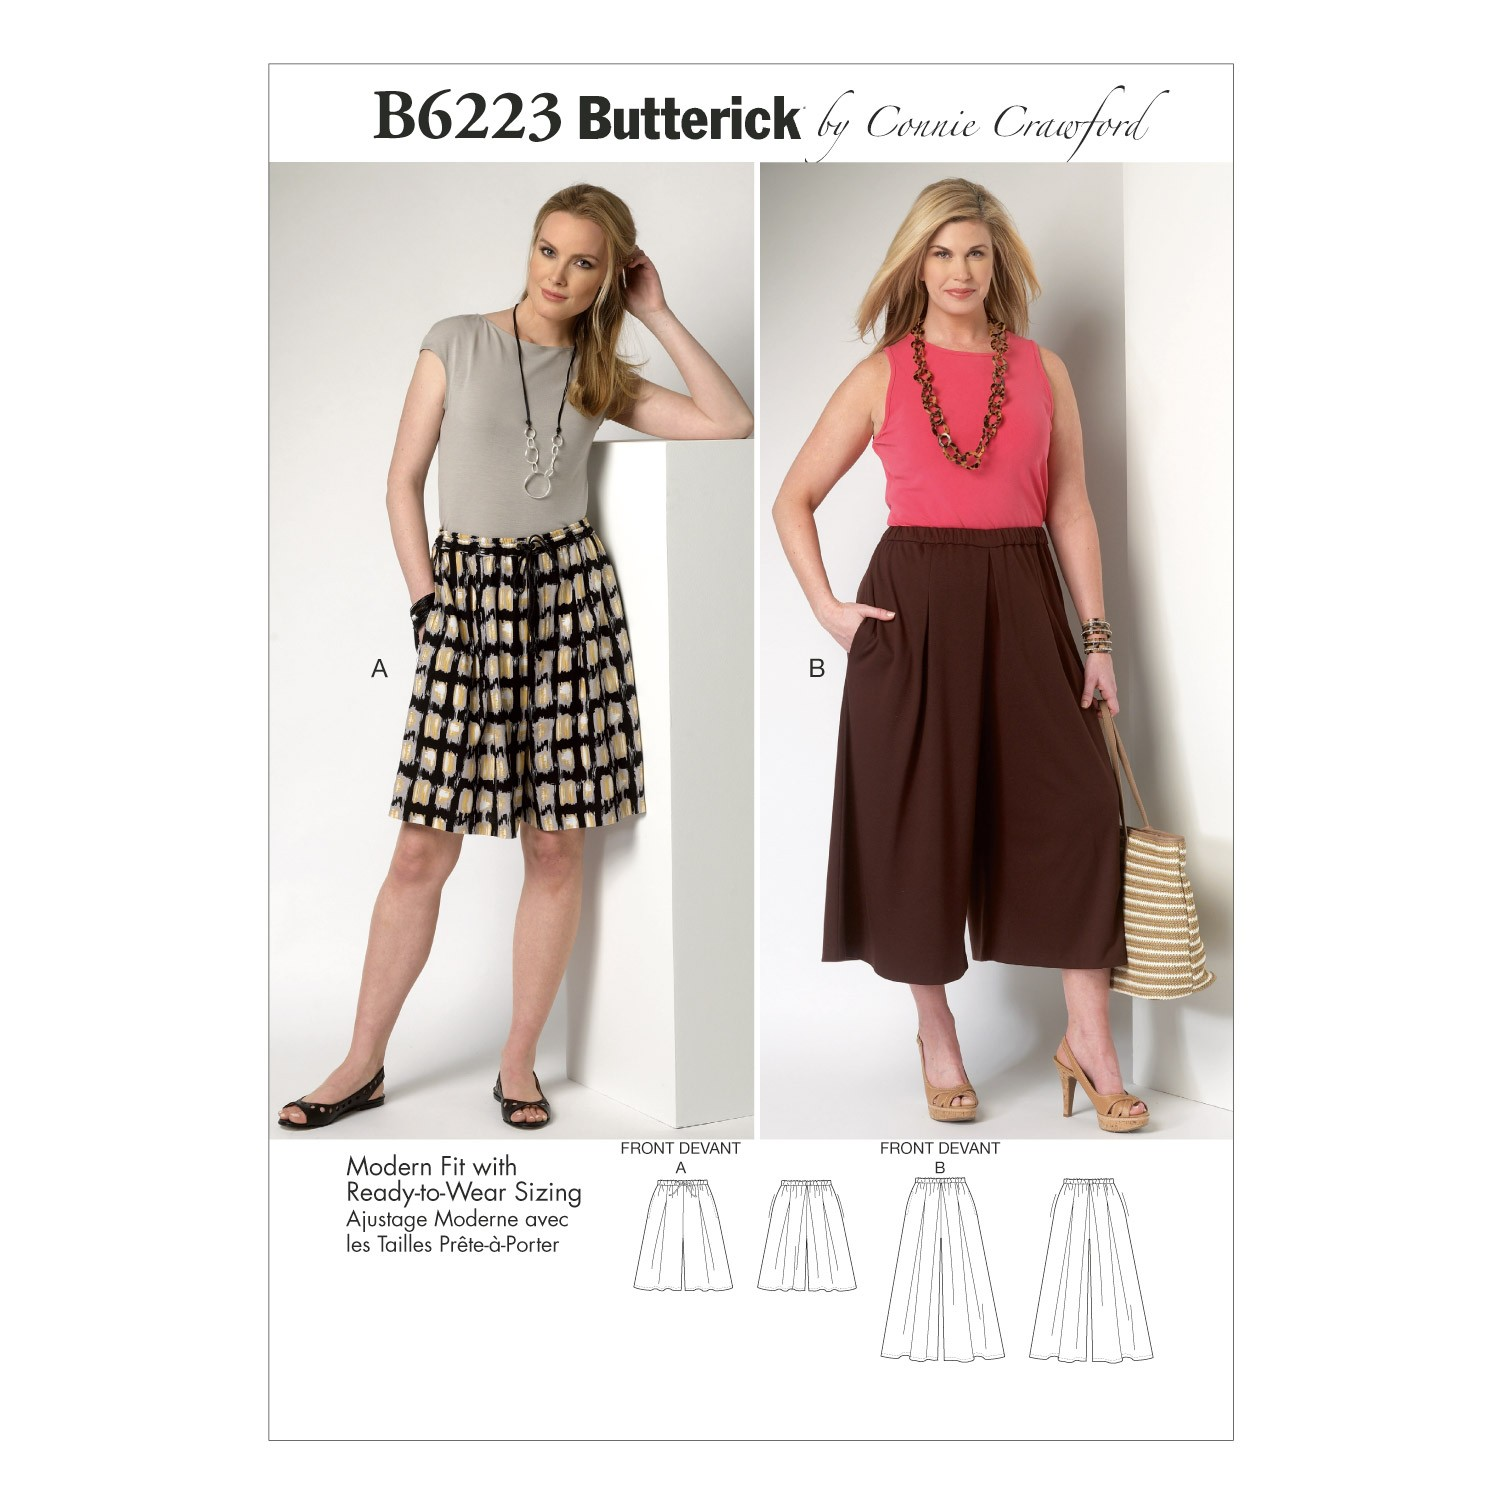 Butterick Sewing Pattern 6223 Misses' Culottes